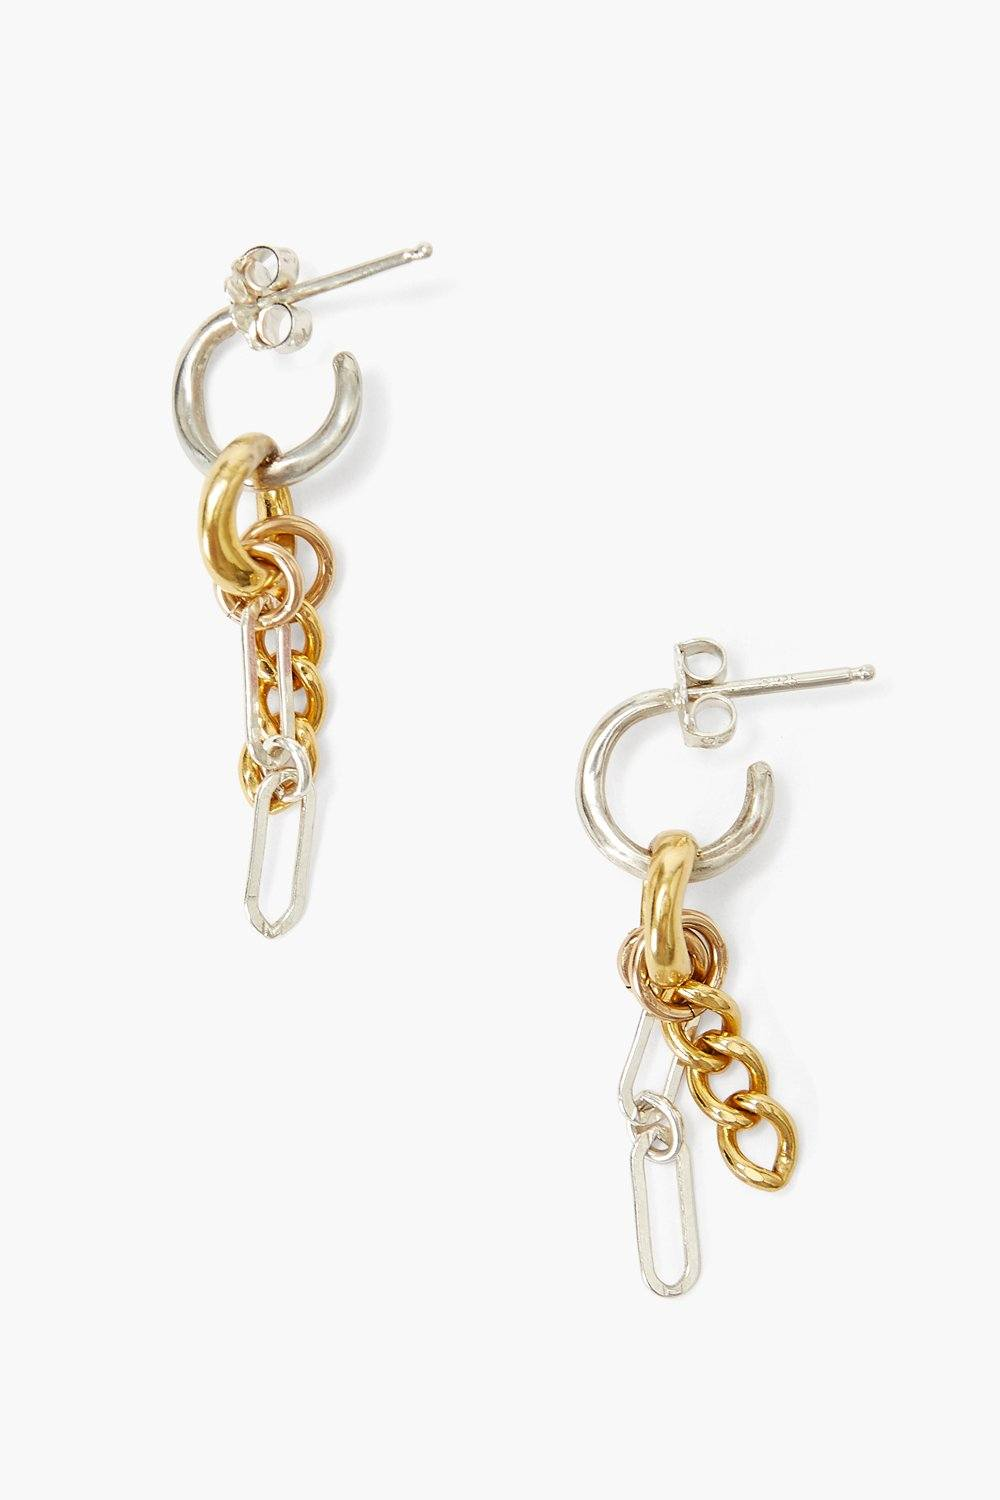 Silver and Gold Cable Chain Earrings